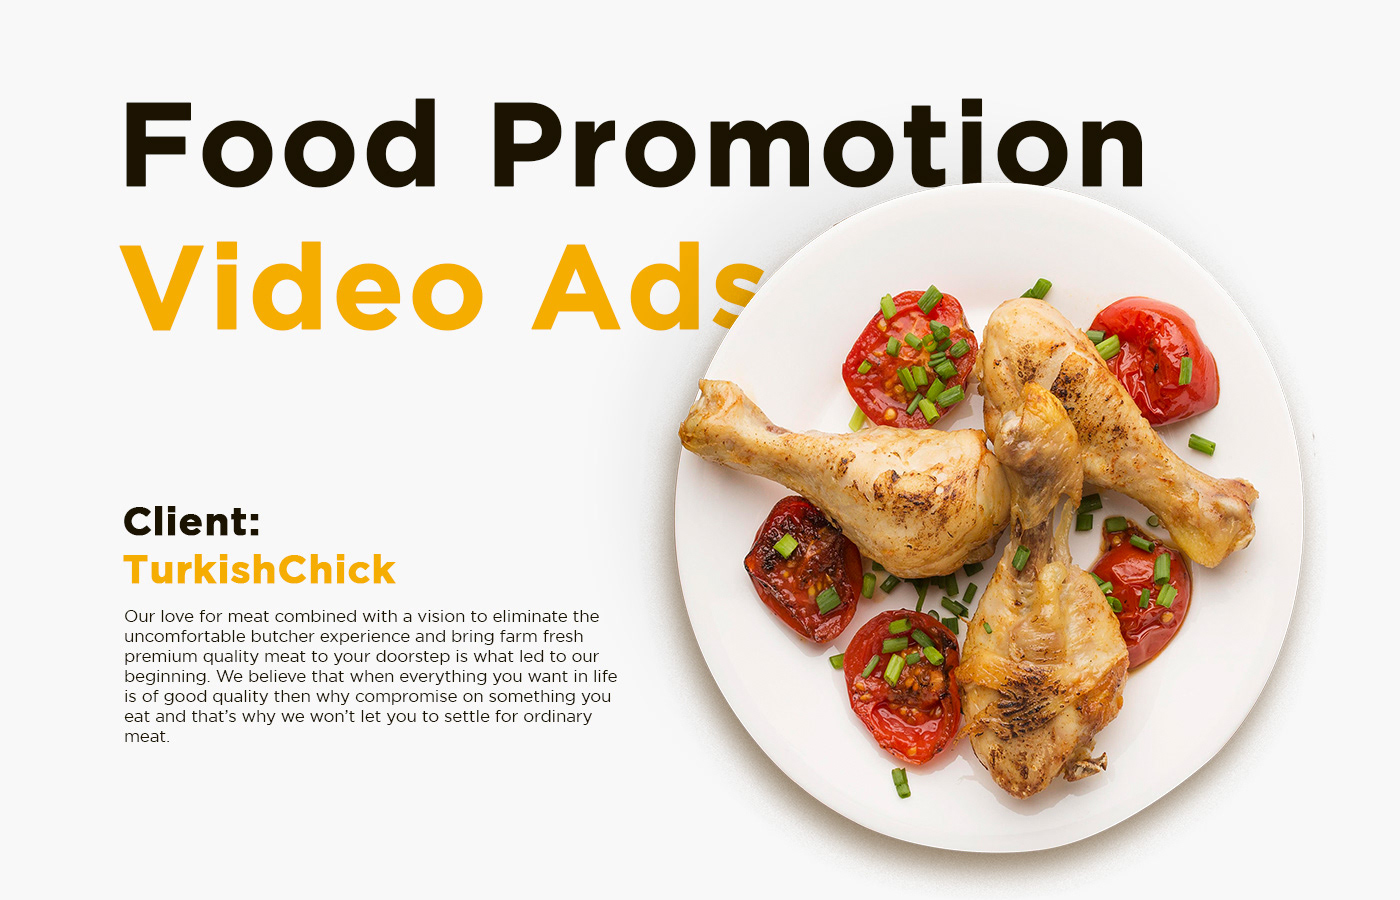 draphicon facebook food banners instagram meat ads new year 2021 Social Media Design Video Ads trending post Delhi